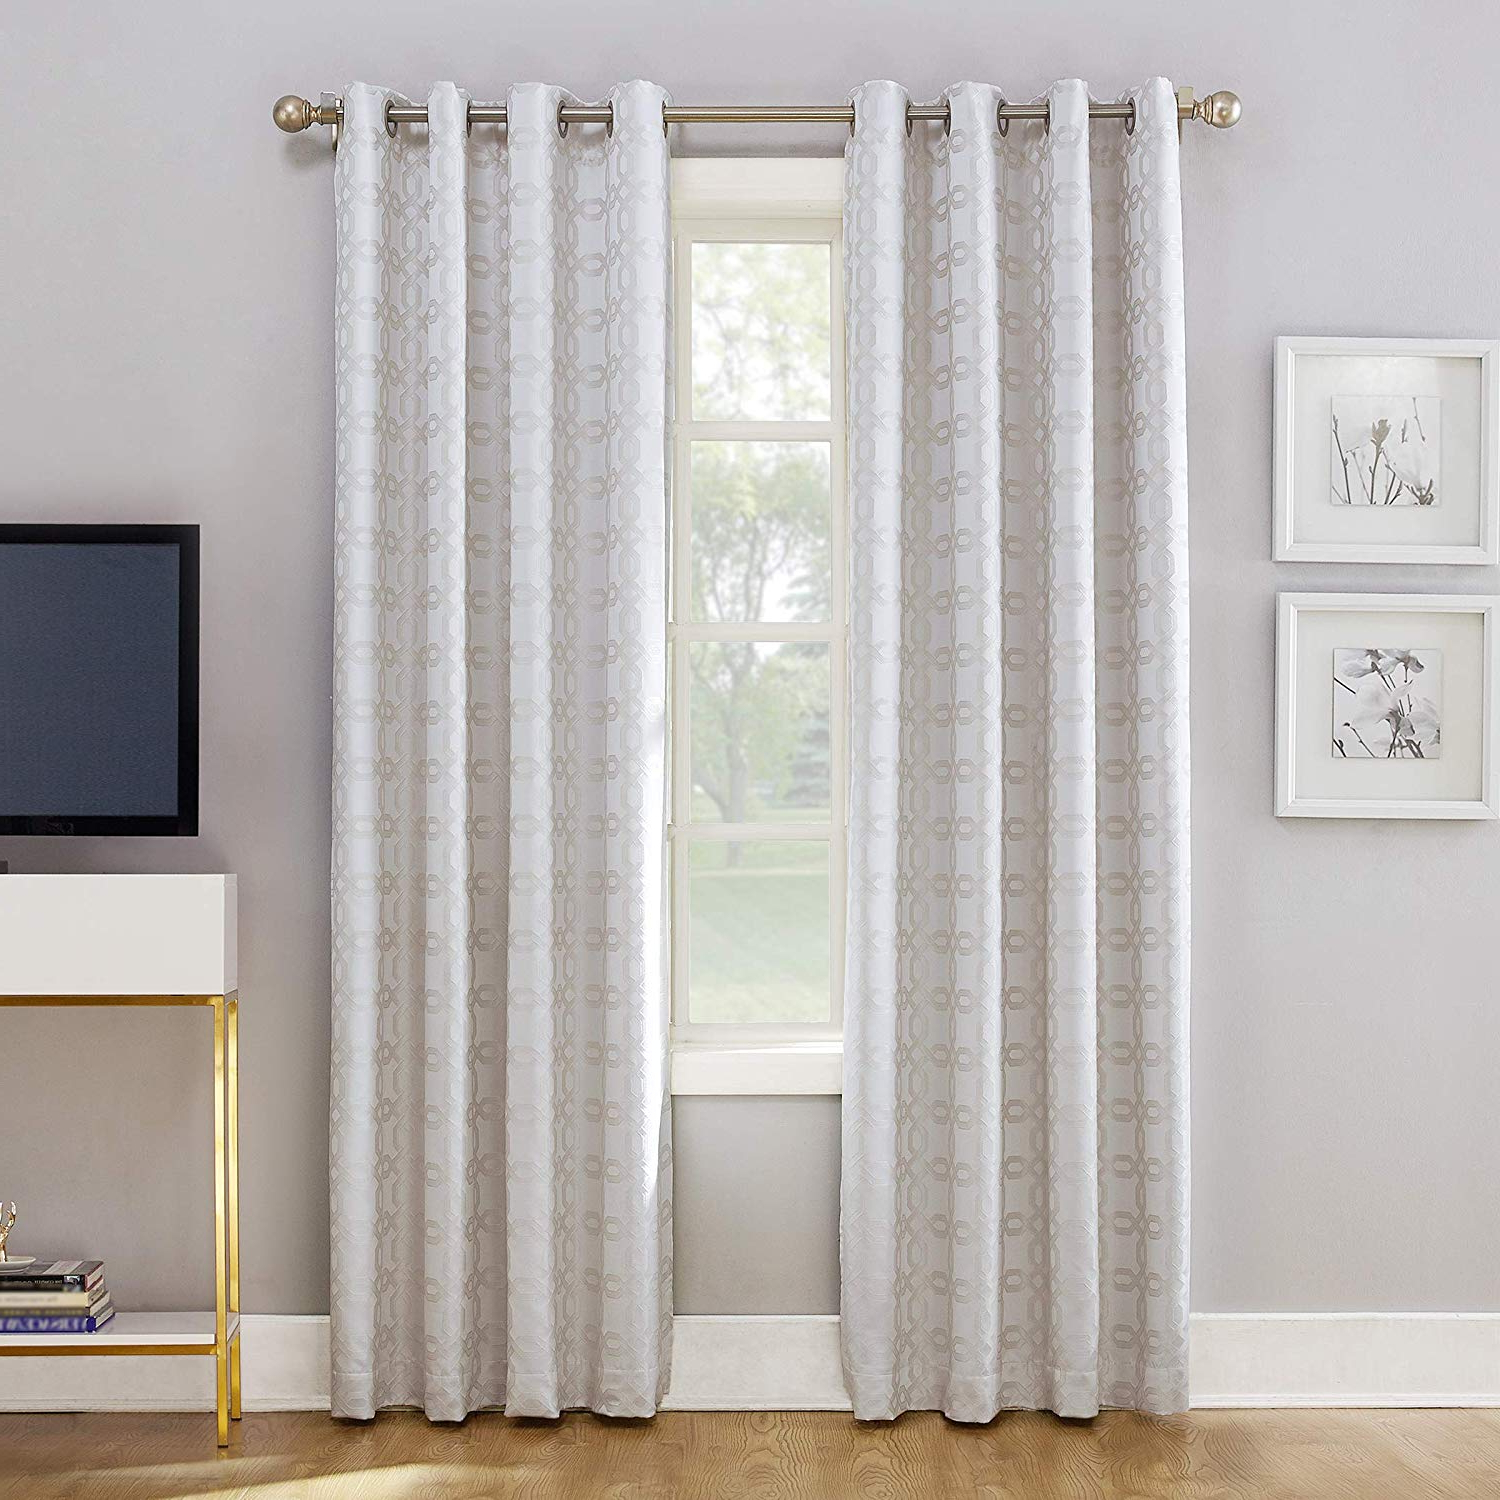 "Newest Sun Zero Rowes Woven Trellis Blackout Lined Grommet Curtain Panel, 52"" X 84"", White In Lined Grommet Curtain Panels (View 3 of 20)"